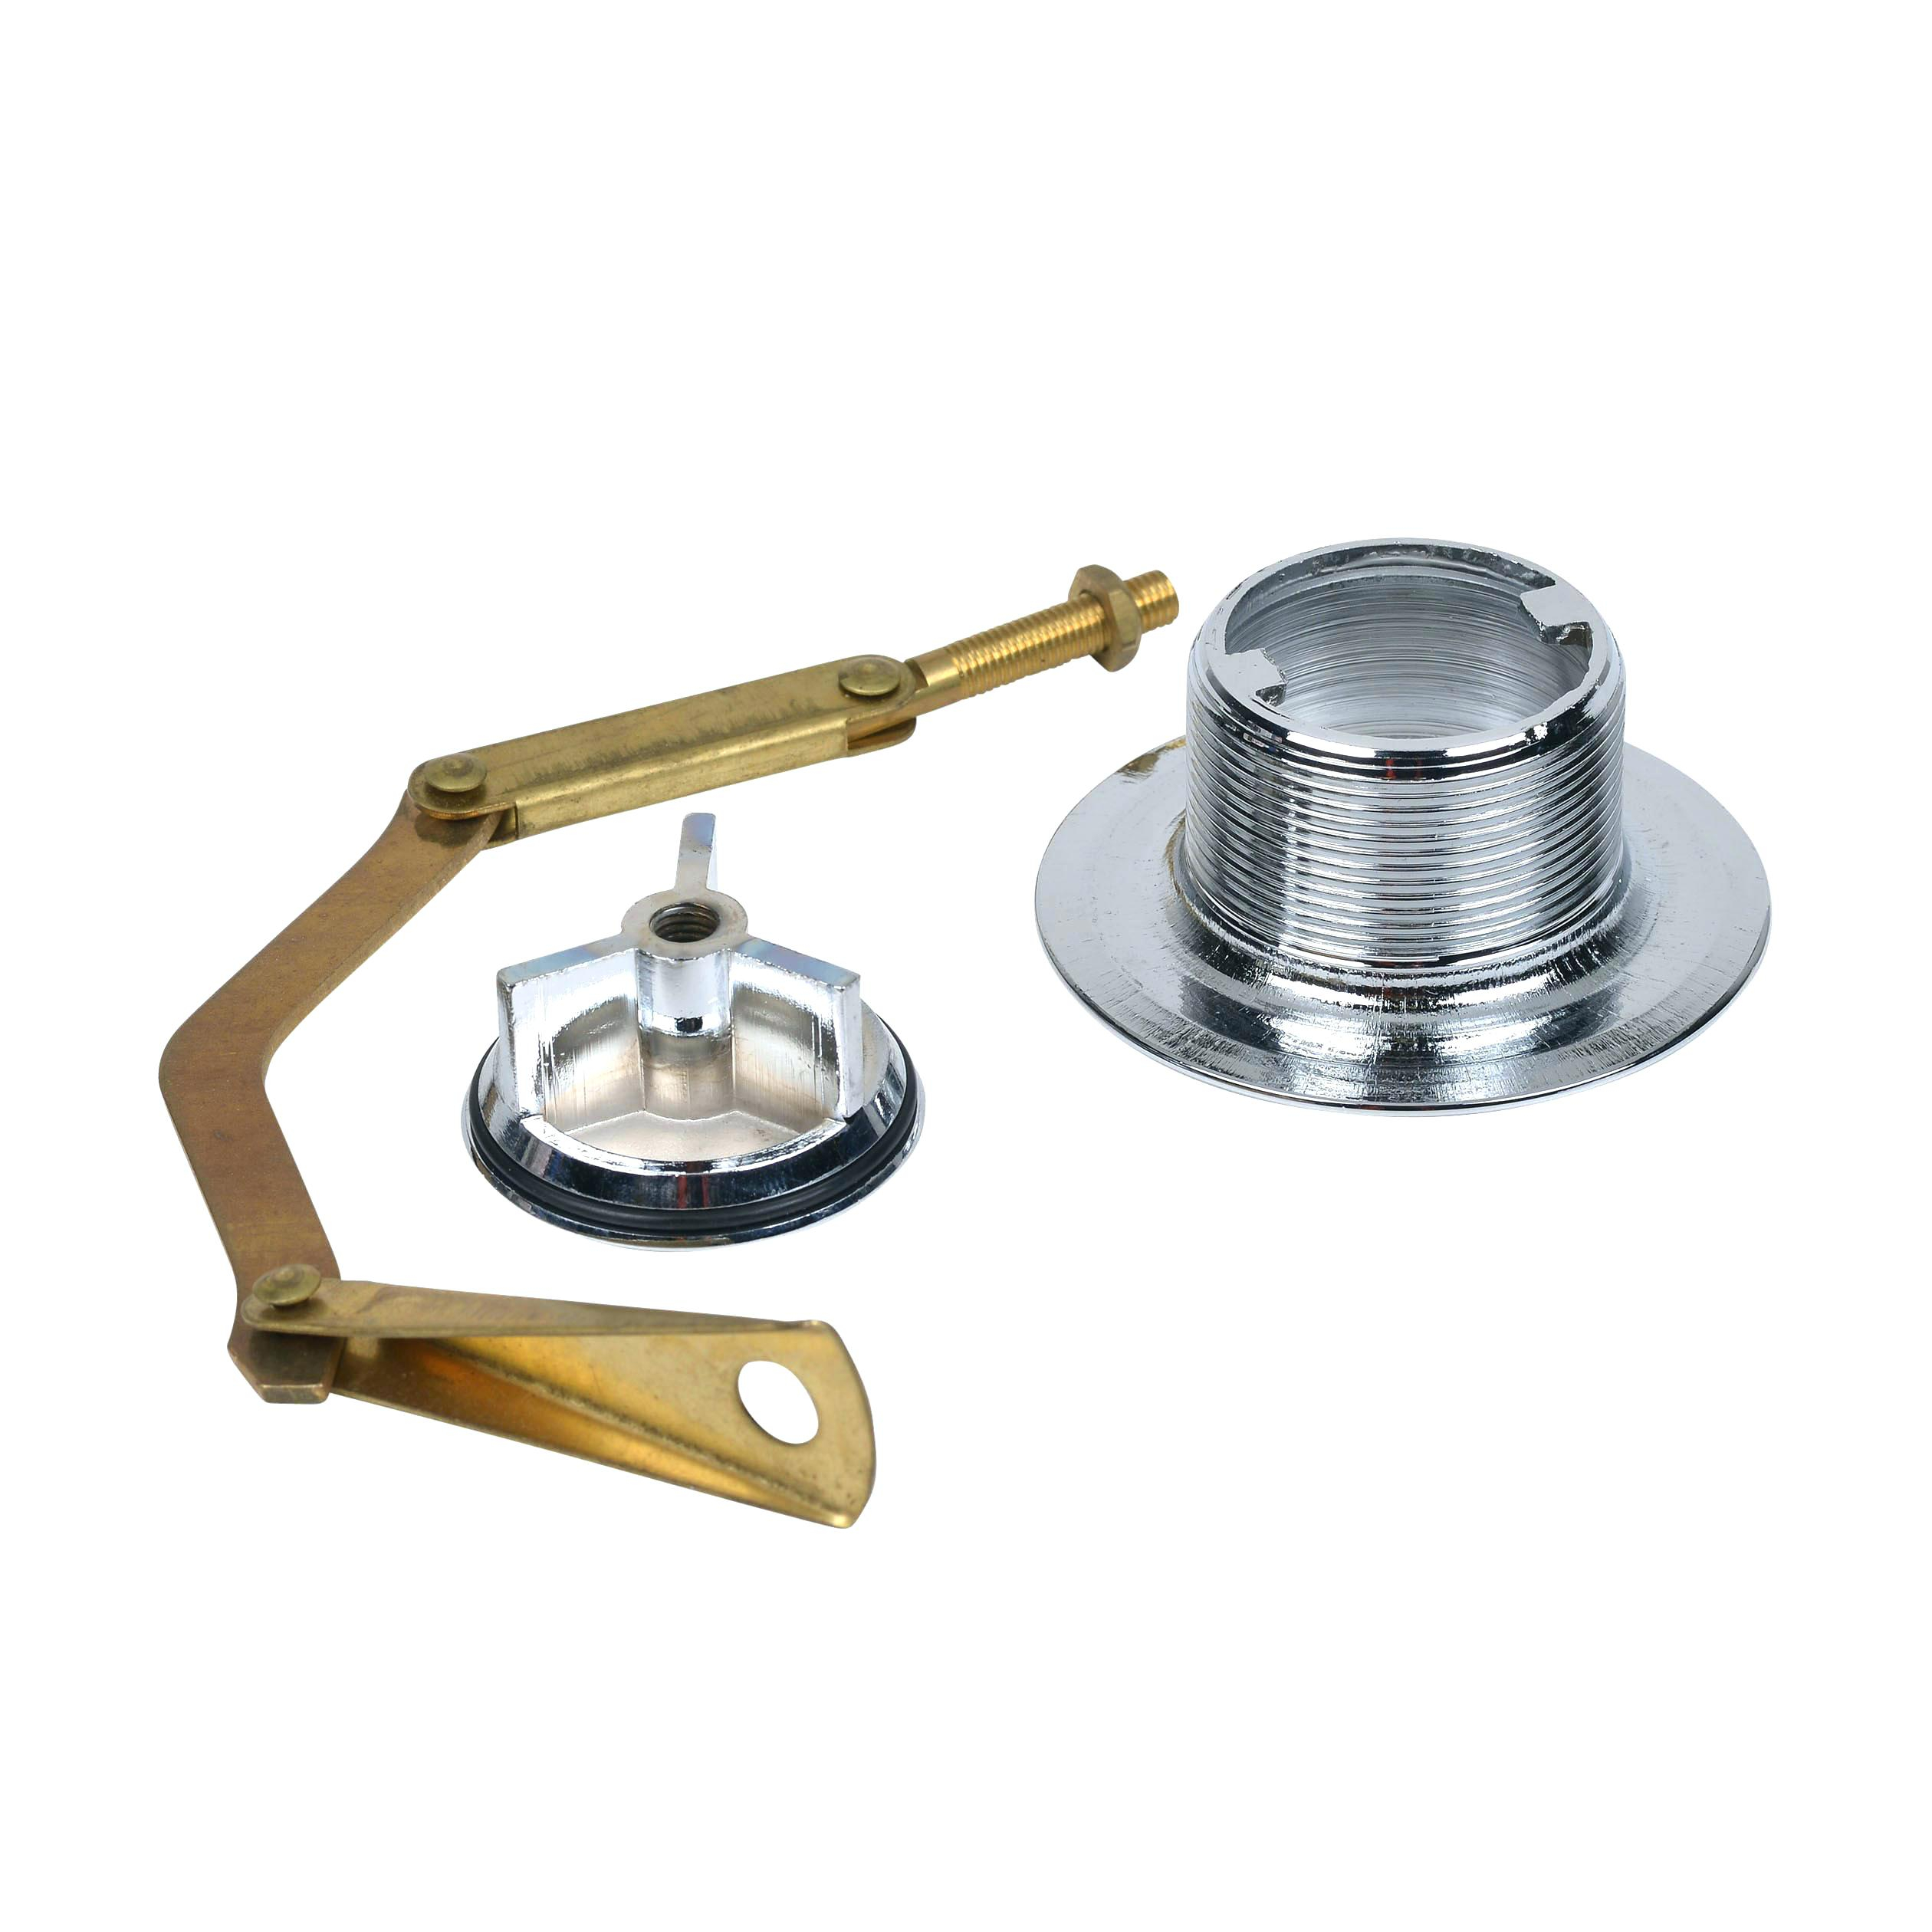 Bathtub Moen Bathtub Drain Tub Kit Fascinating Bronze Mixer inside dimensions 2520 X 2520